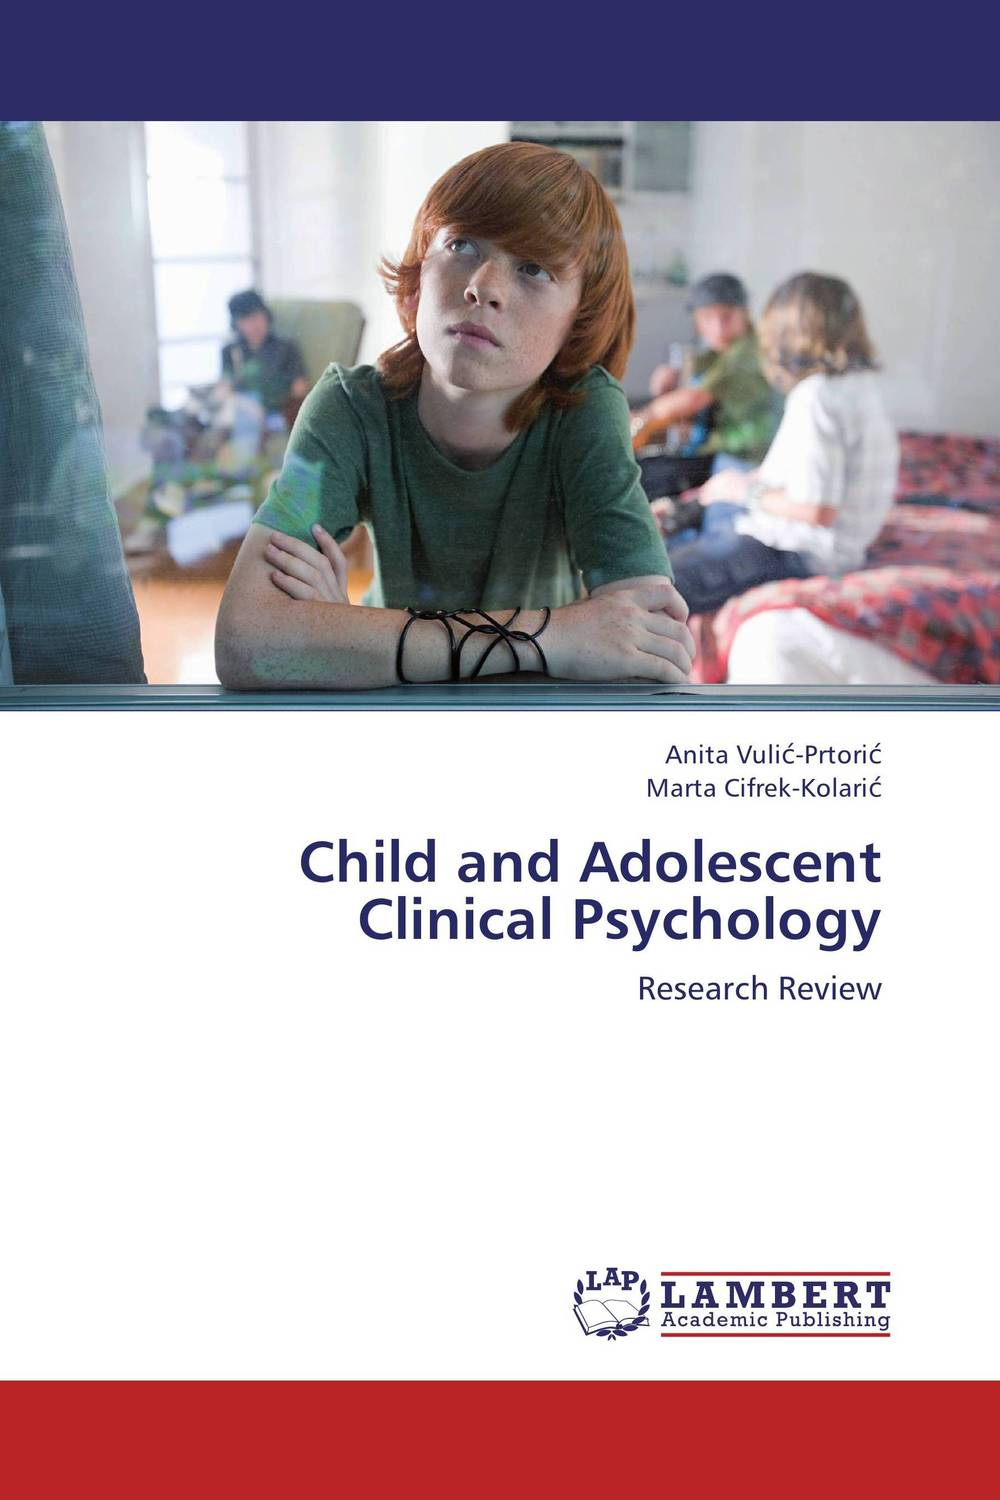 Child and Adolescent Clinical Psychology psychosomatic symptoms in children and adolescents